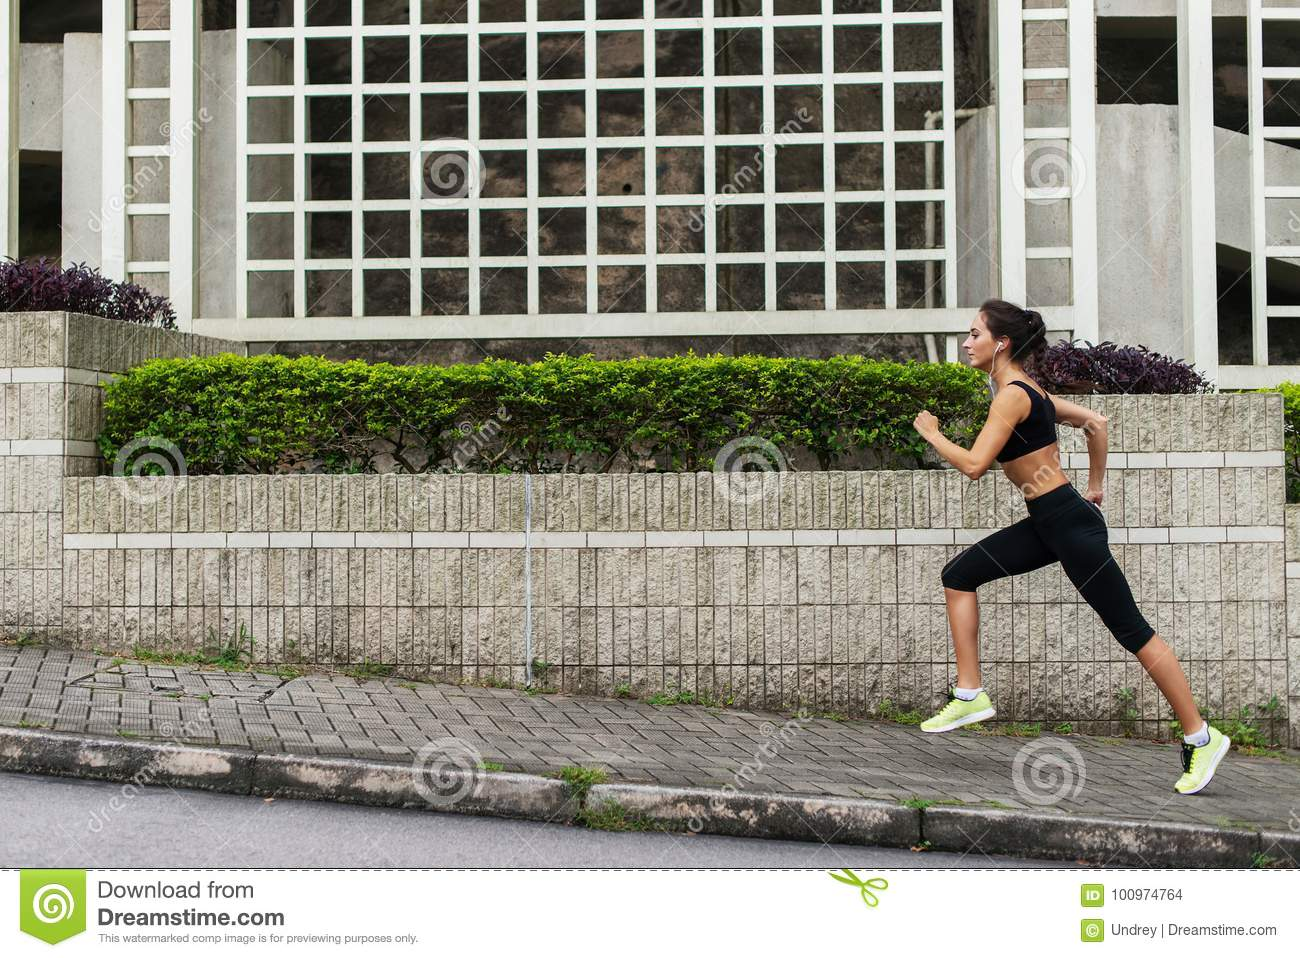 Get free stock photos of runner character listen to music shows.